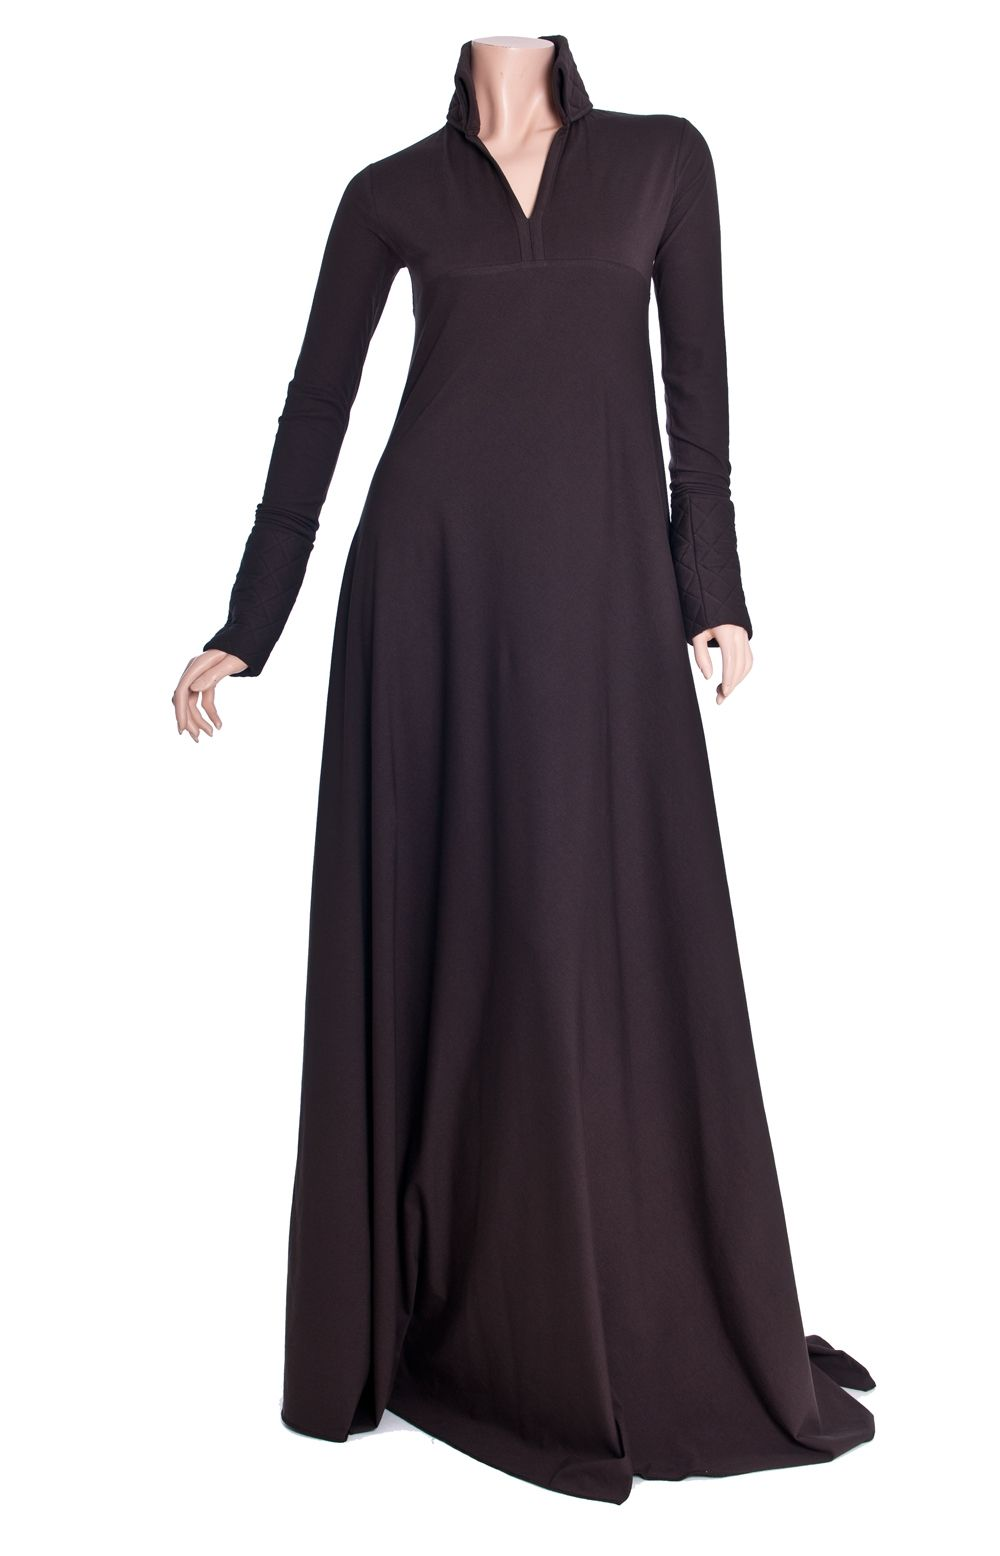 Abaya home abayas jilbabs winter warmers abaya islamic attire pinterest abayas - Dressing modellen ...